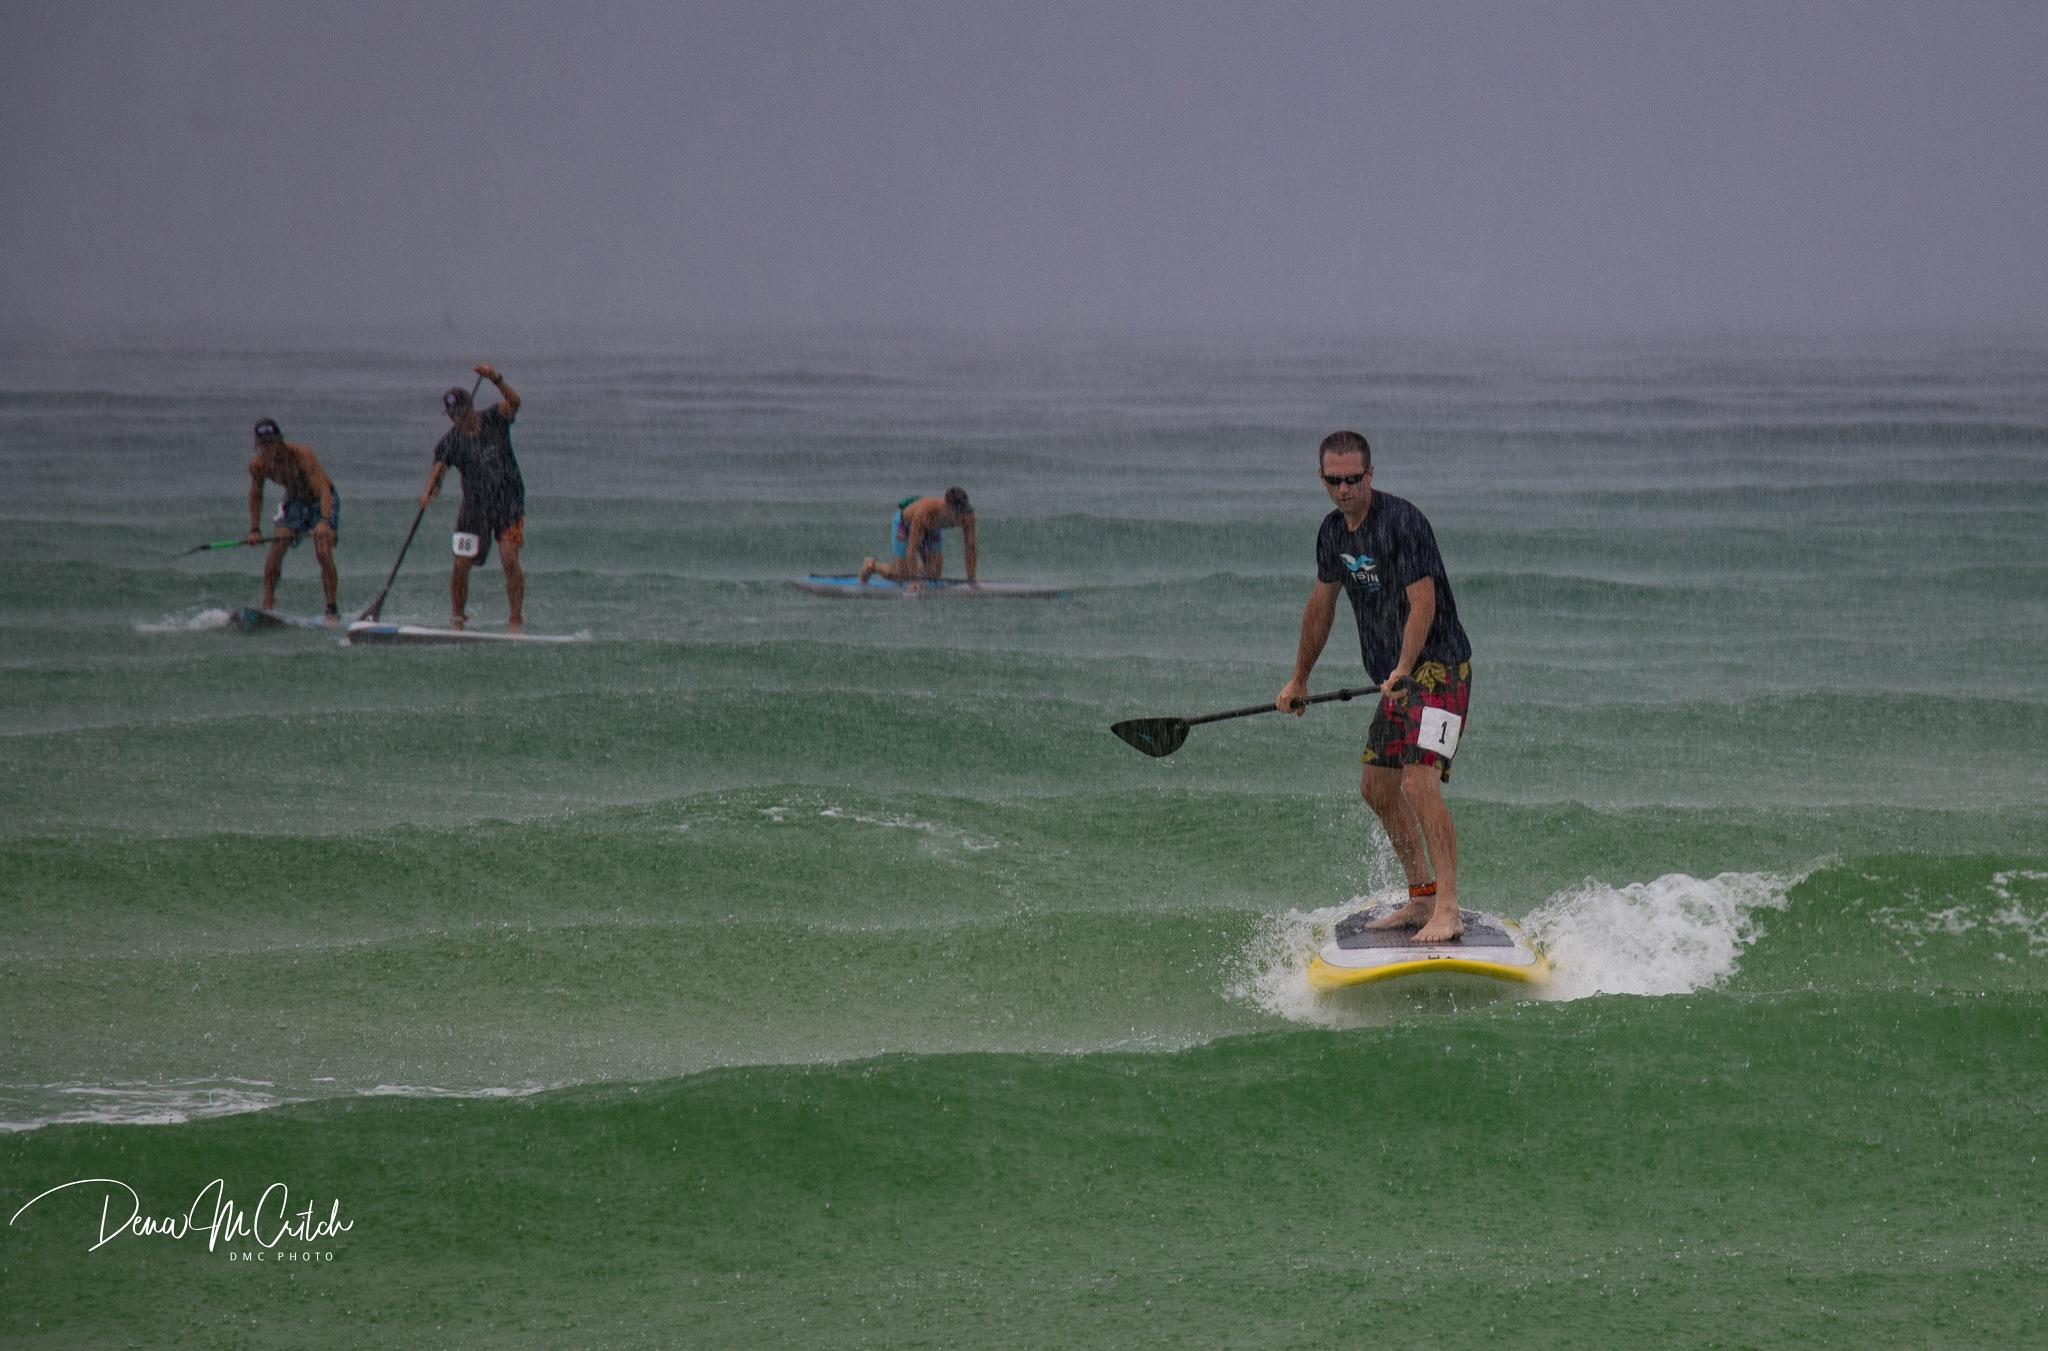 Paddle in the Rain by dena.critch